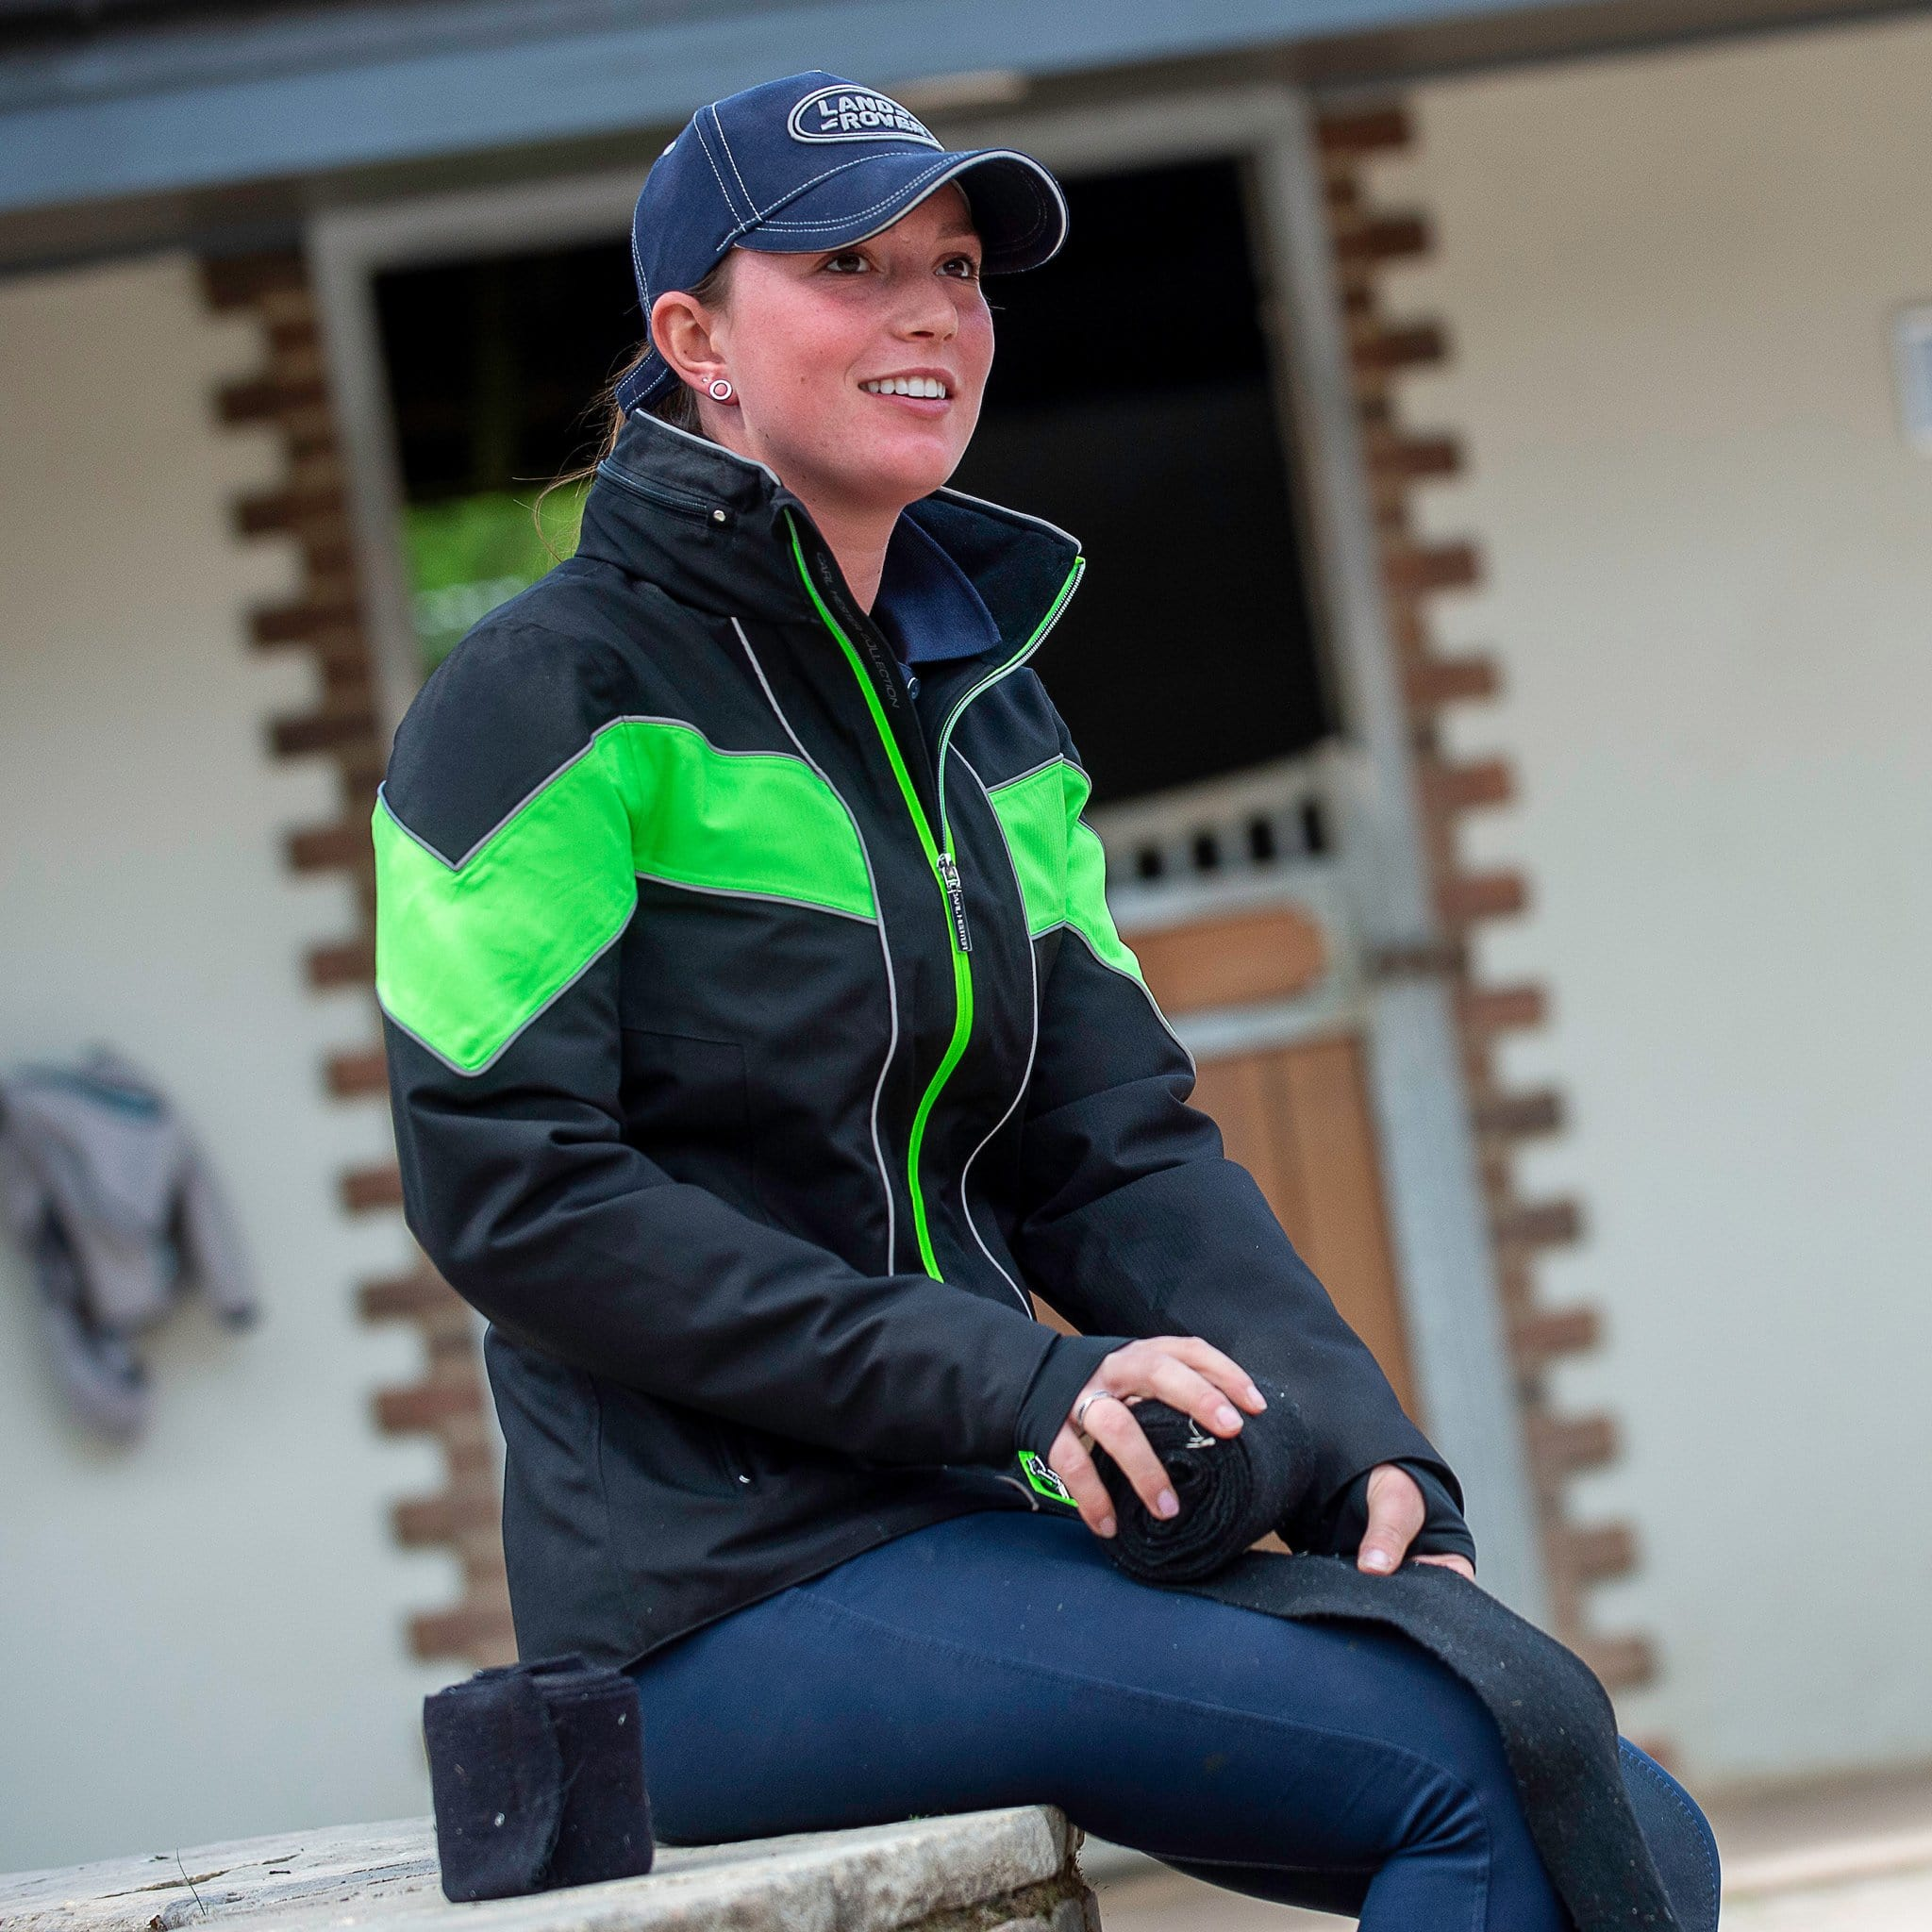 Equisafety Carl Hester Giorgione Waterproof Jacket CHC1 Green On Female Model Rolling Bandage